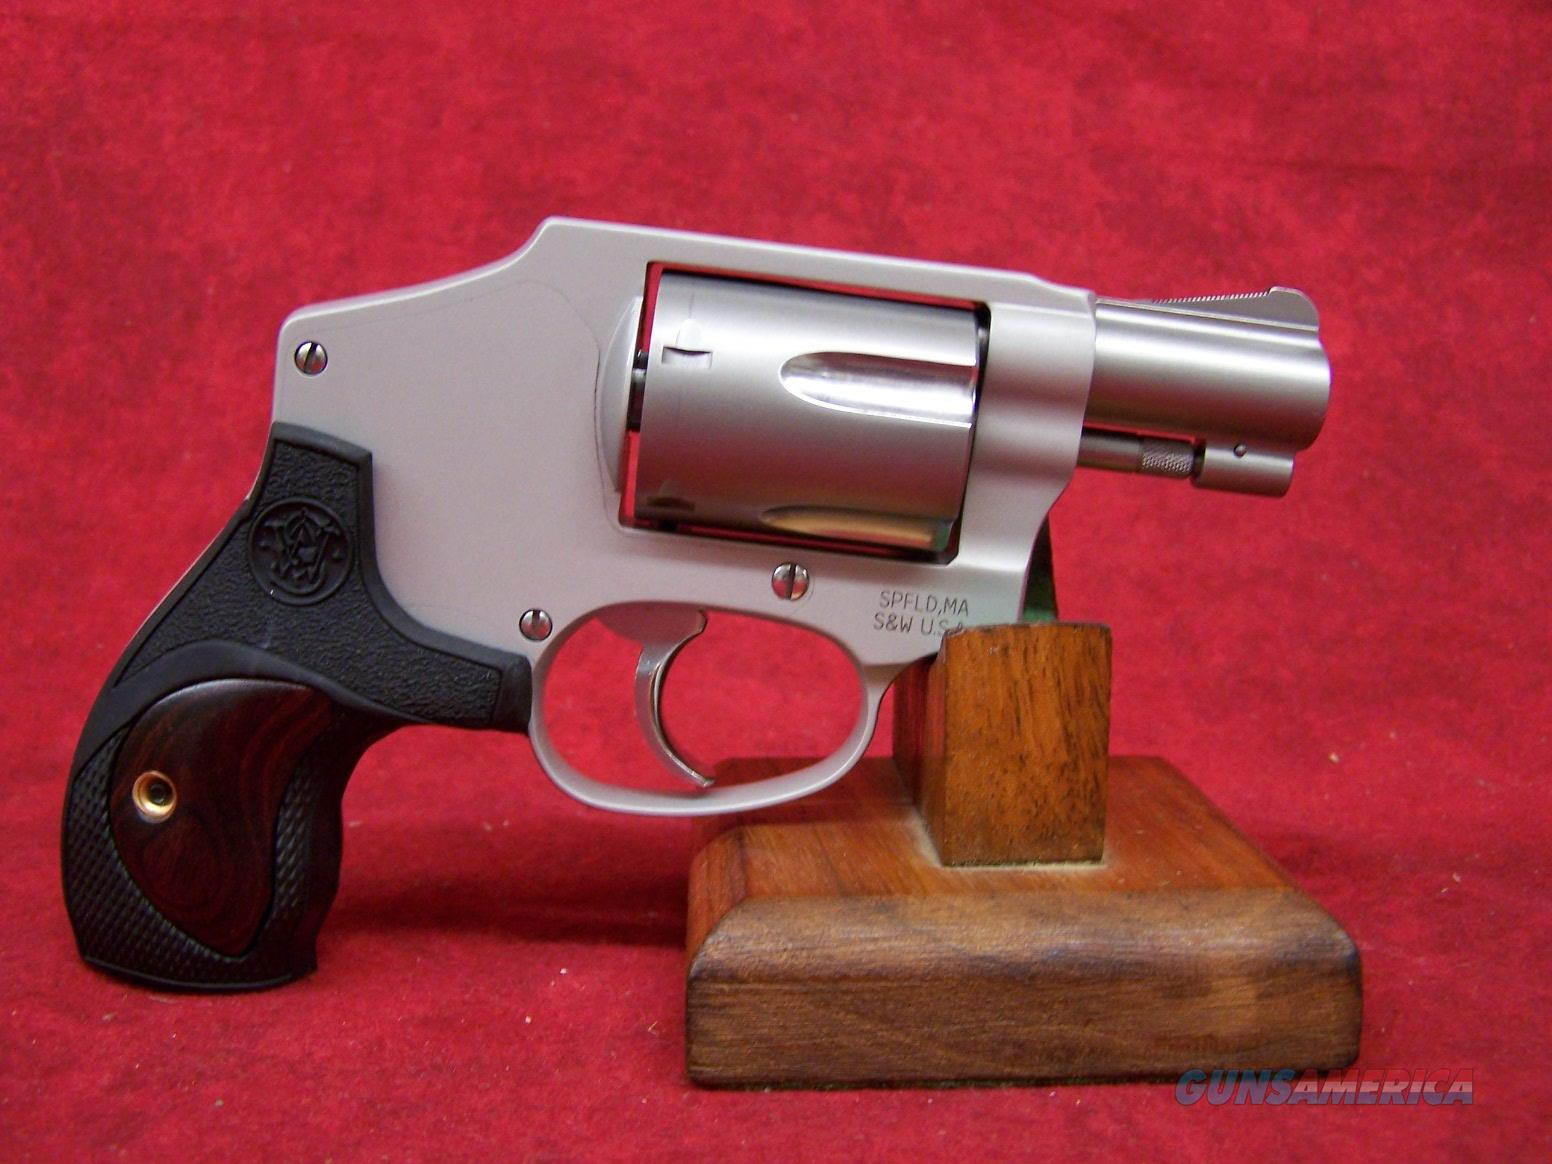 """Smith & Wesson 642 38 S&W 1.875"""" ALUM FRAME SYN W/ WOOD (10186)  Guns > Pistols > Smith & Wesson Revolvers > Performance Center"""